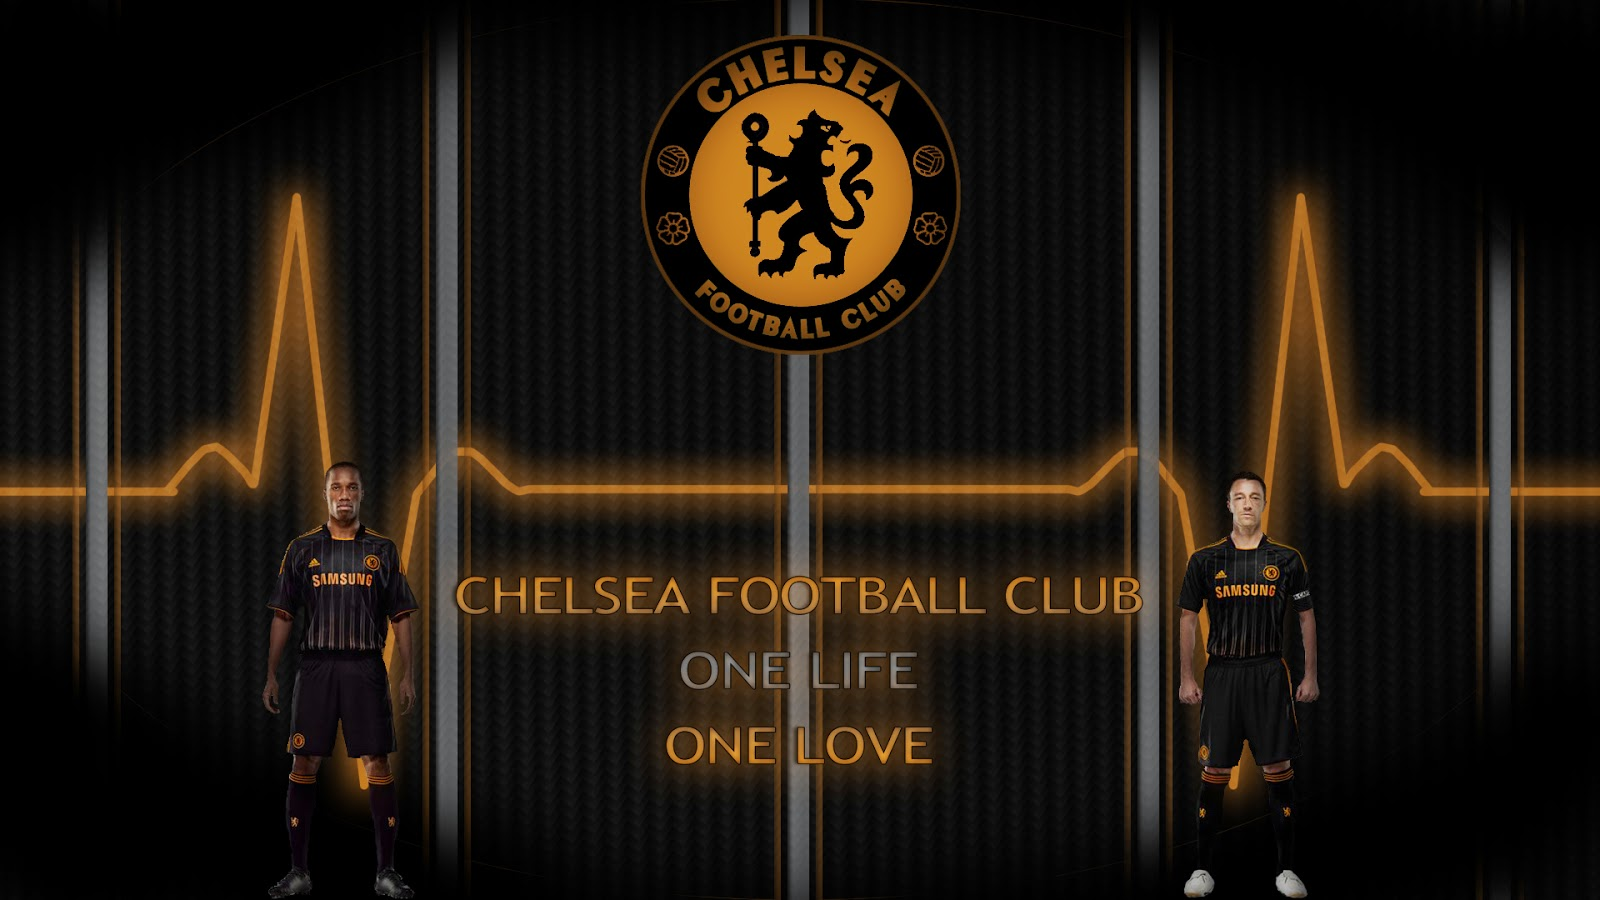 Chelsea Football Club Wallpaper Football Wallpaper HD 1600x900